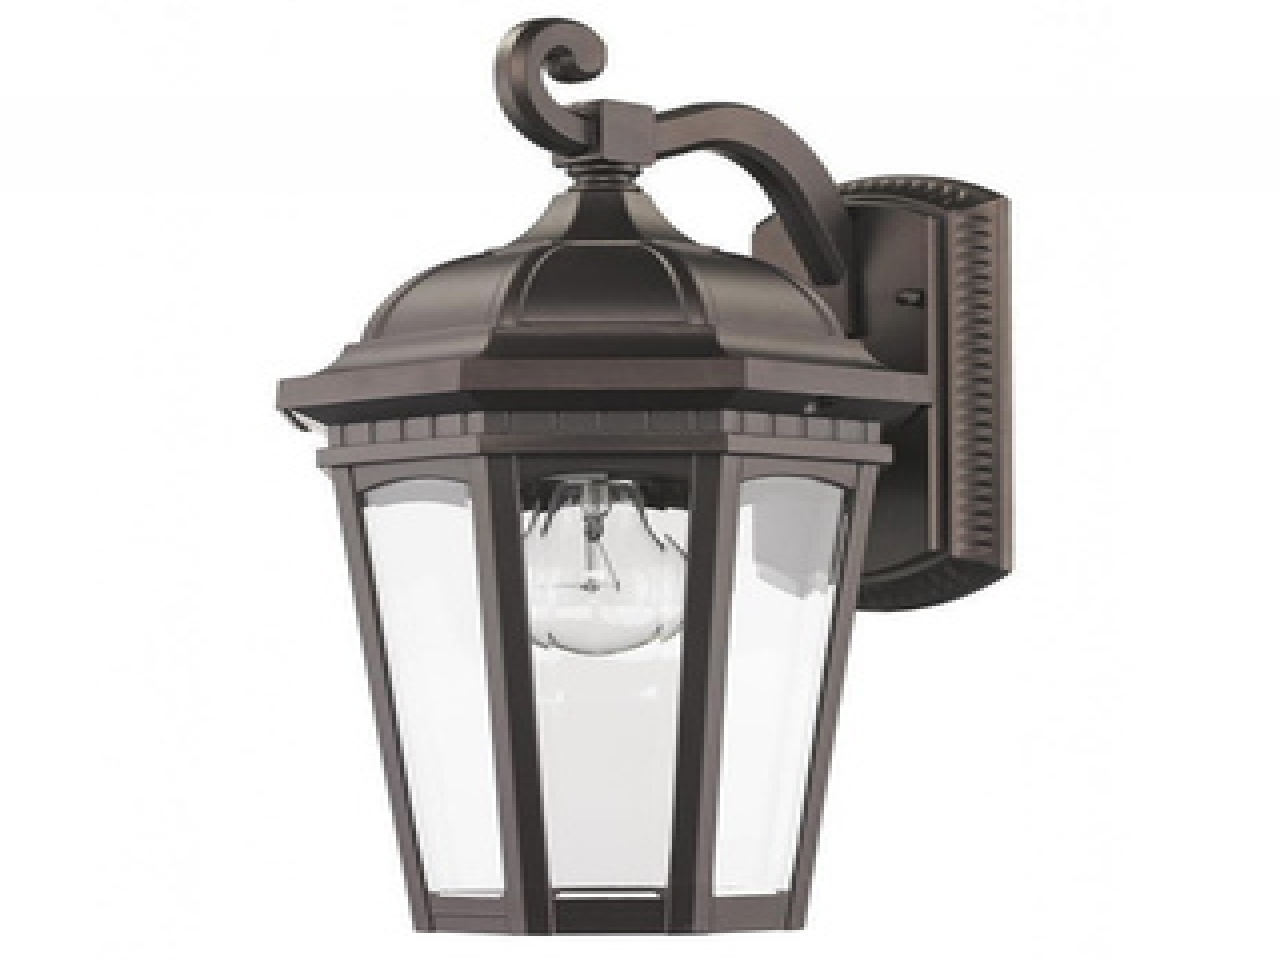 Well Known Outdoor Wall Mount Lighting Fixtures Pertaining To Light : Lantern Outdoor Wall Mount Lights Simple White Decoration (View 12 of 20)